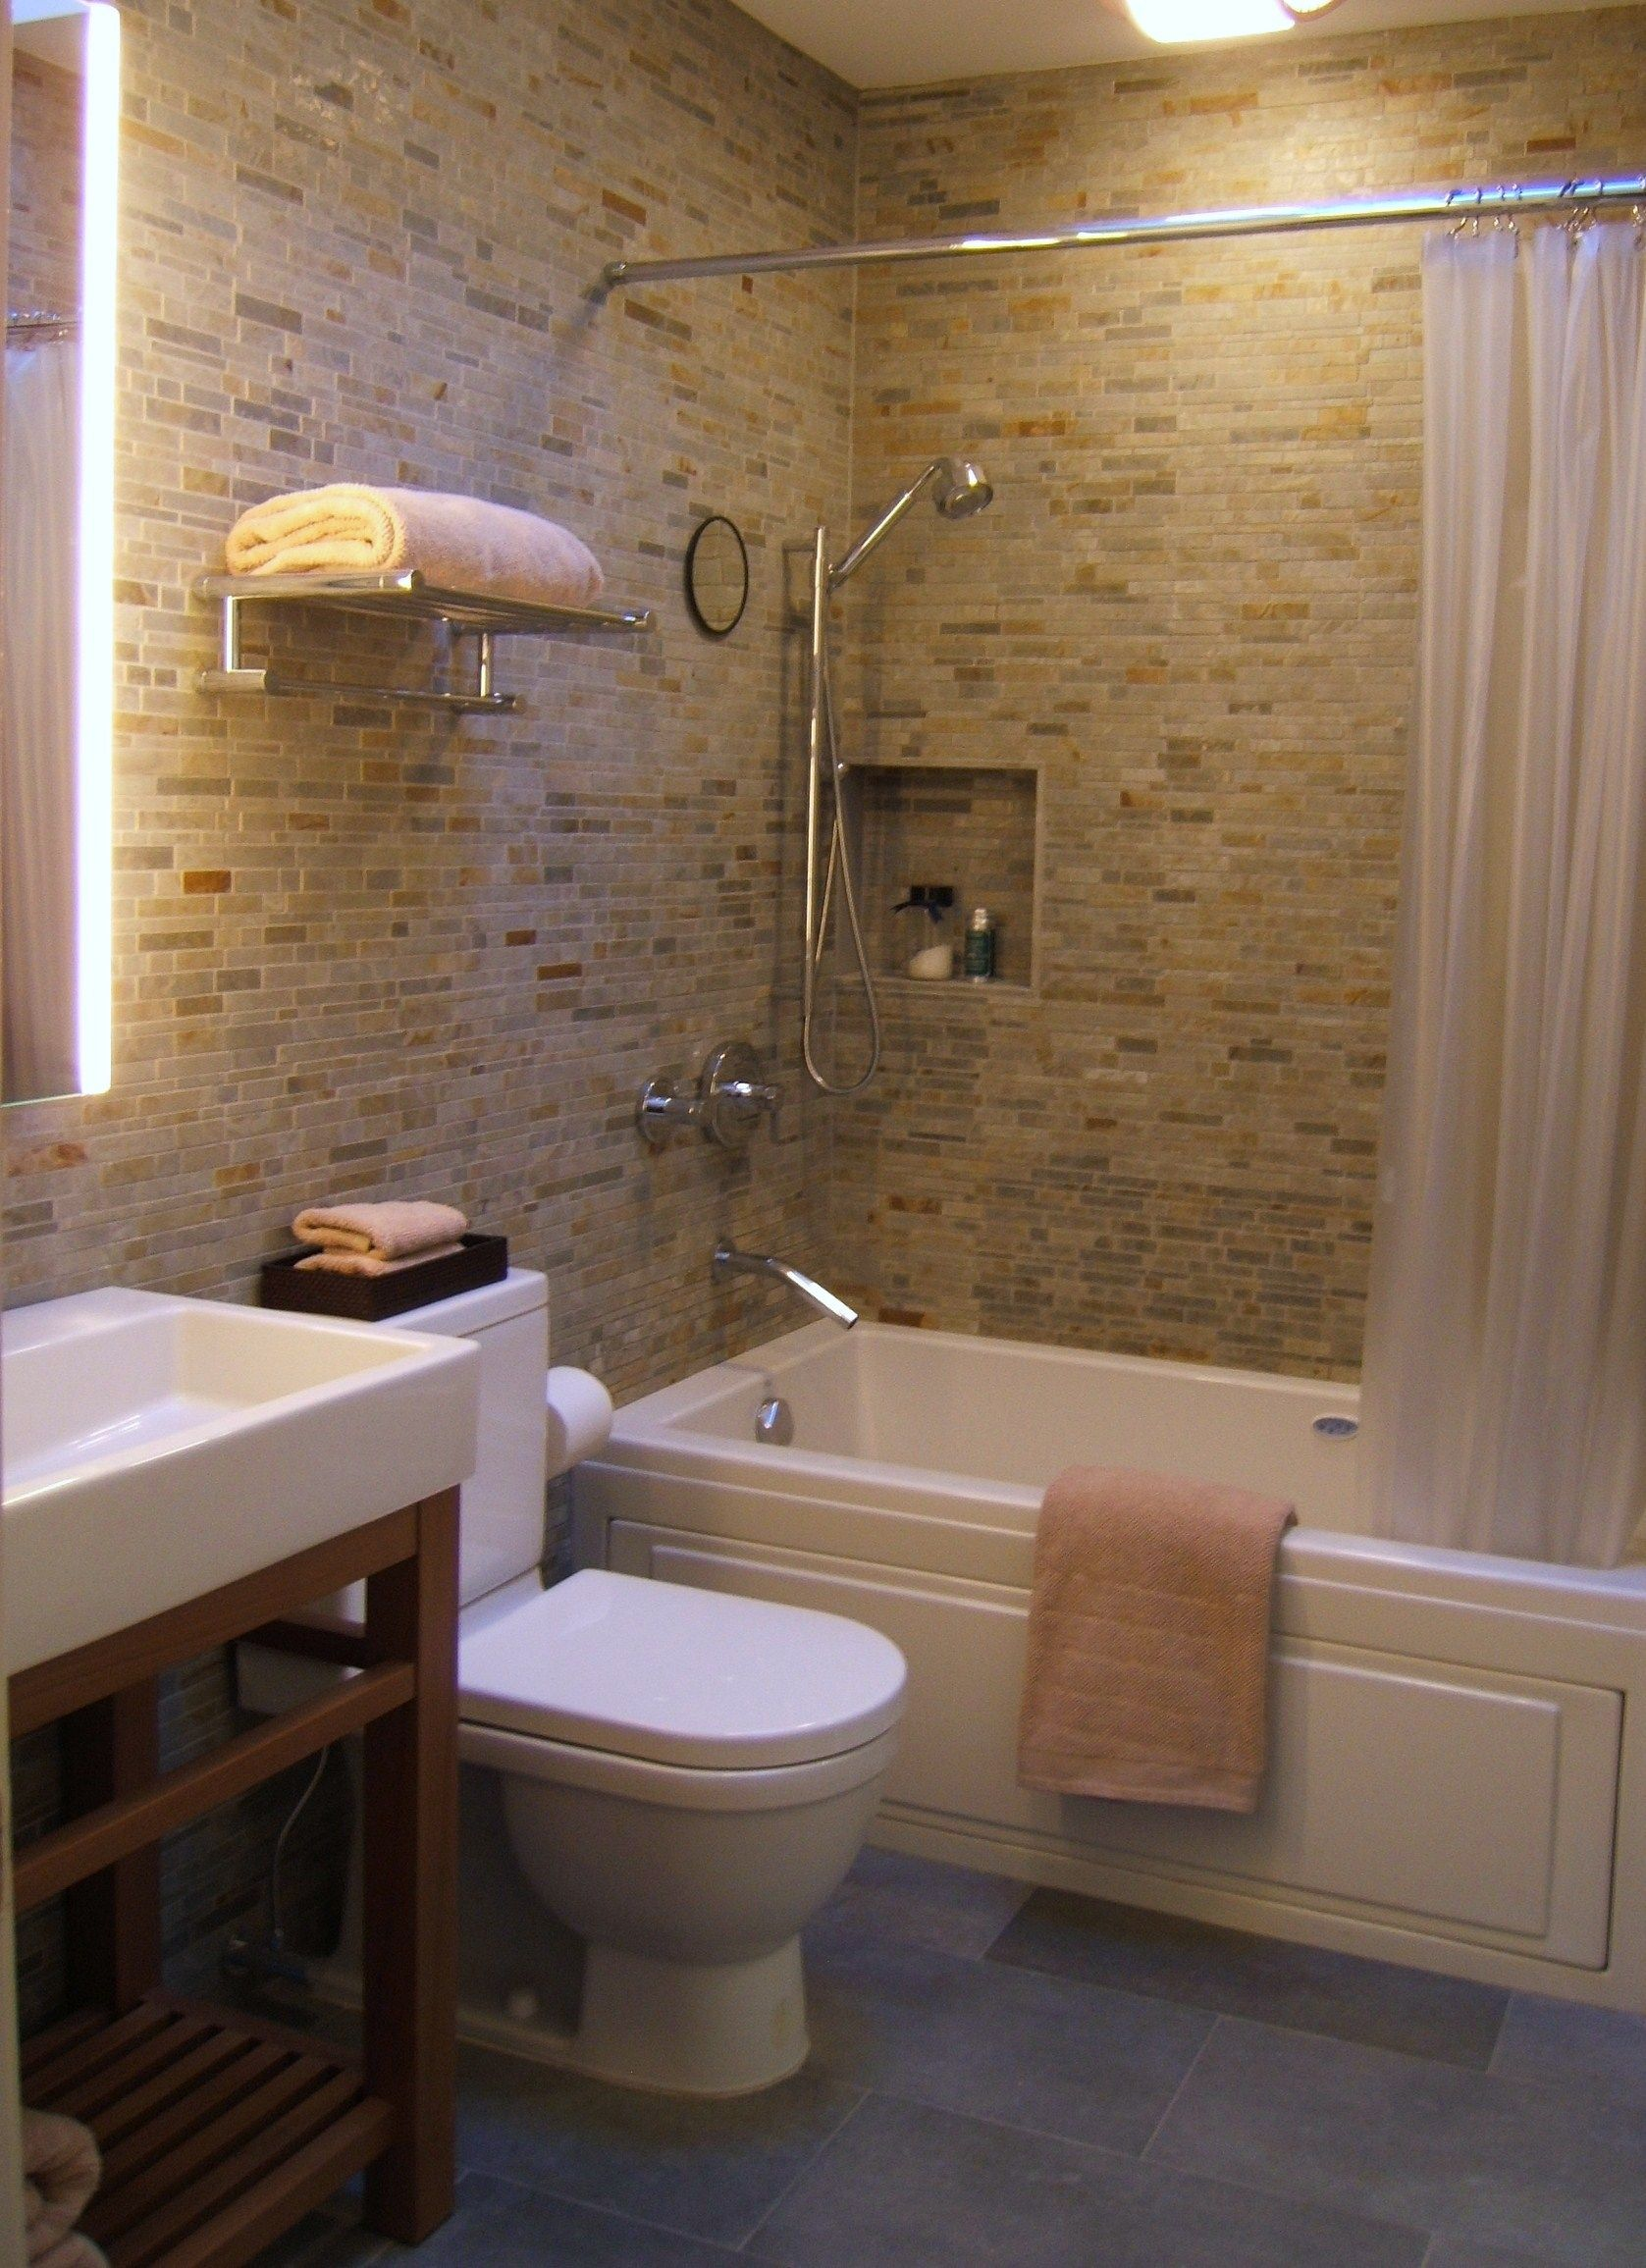 Small bathroom designs south africa small bath for Small toilet design ideas